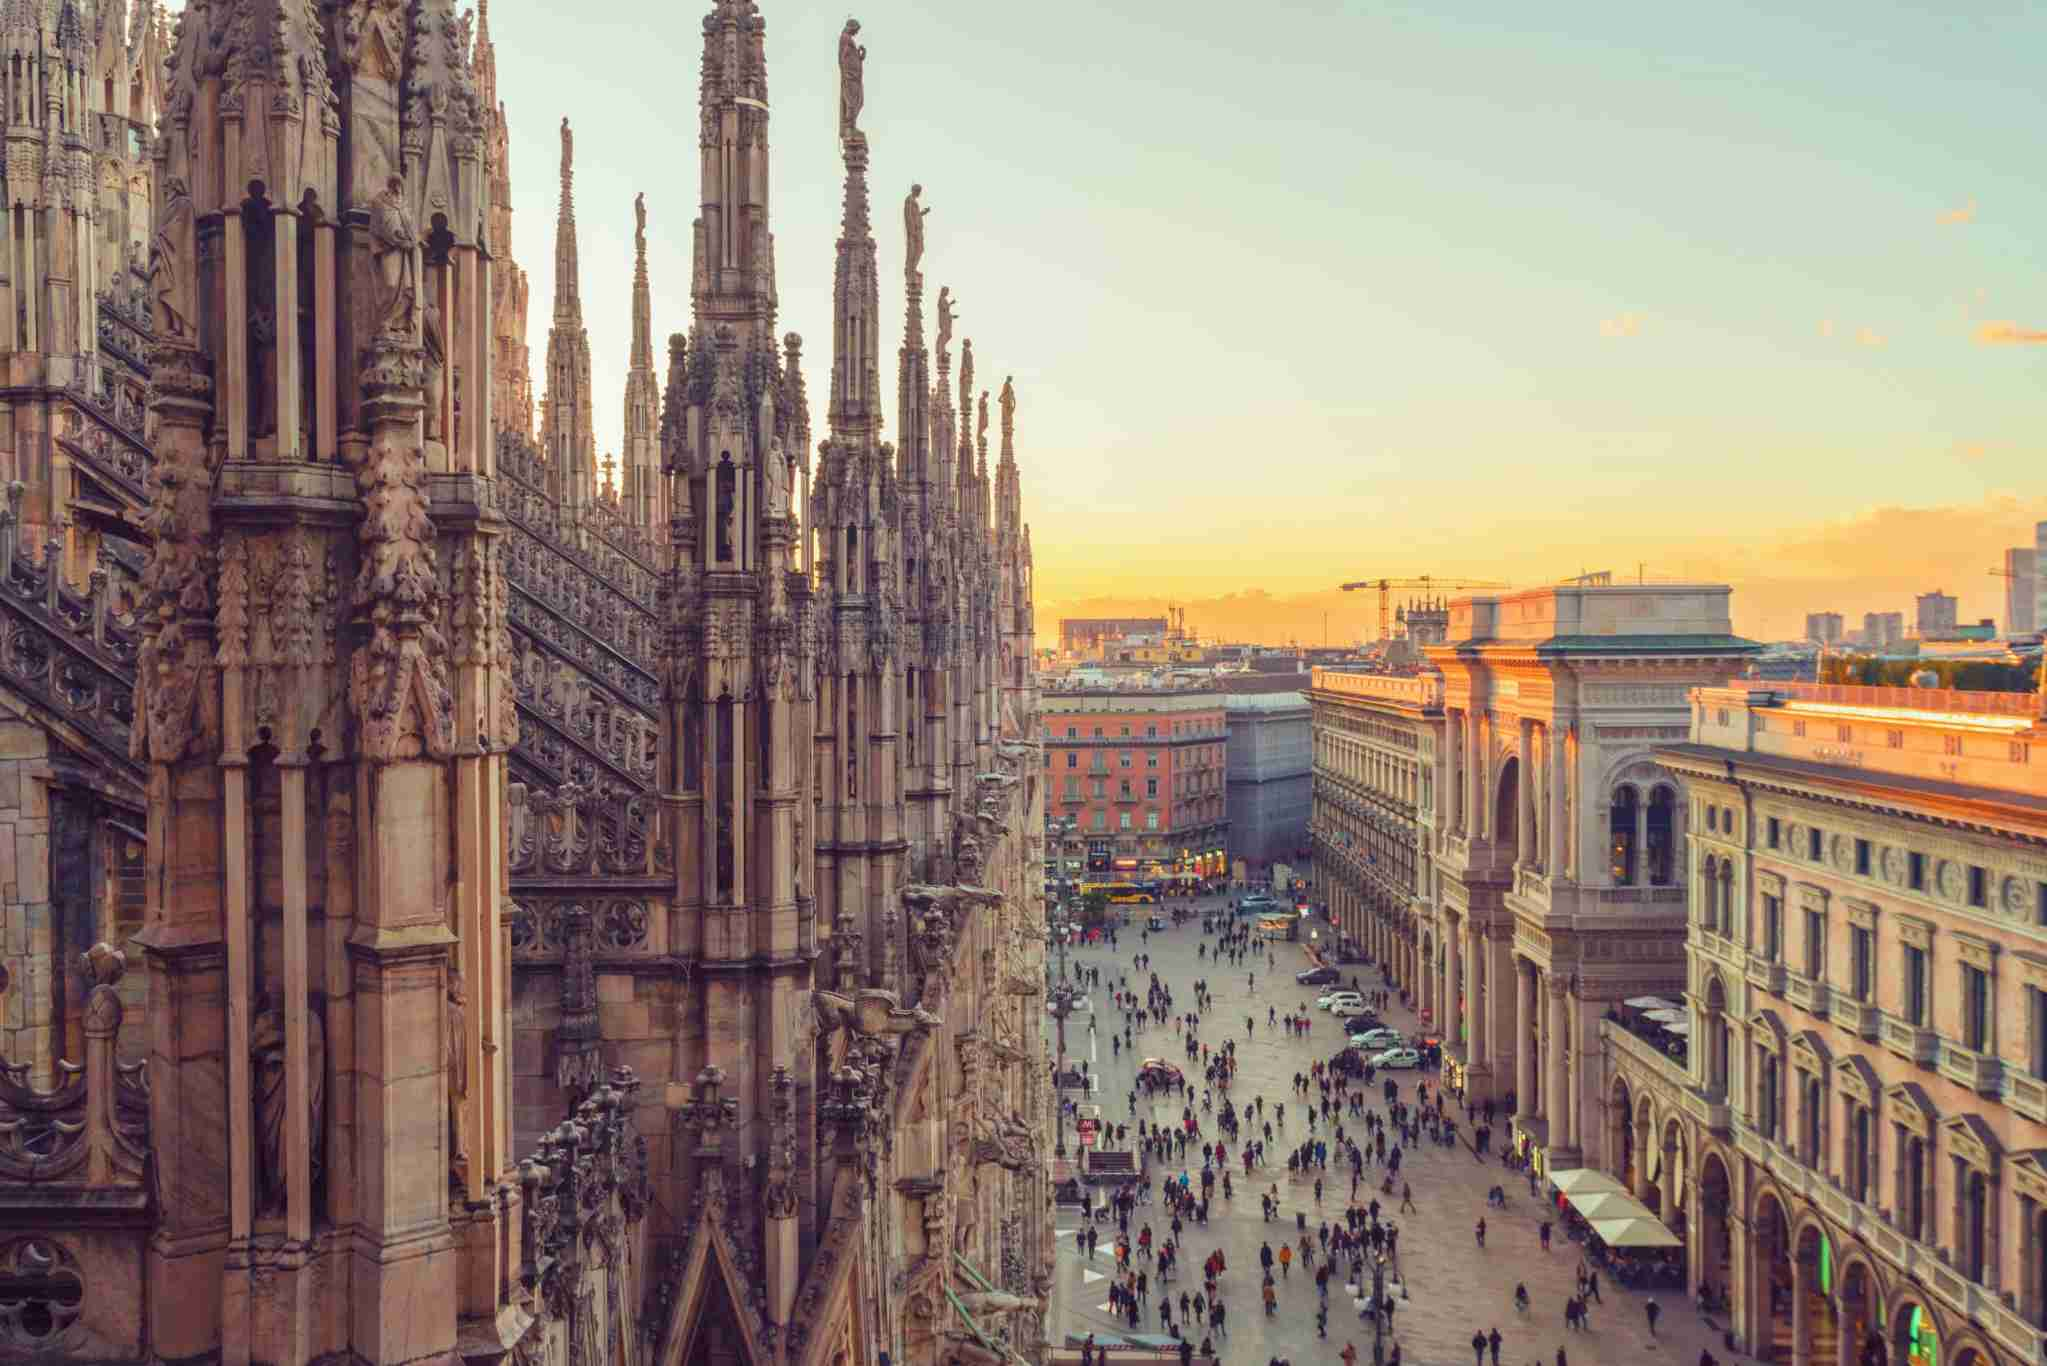 Milan at sunset. (Photo by Westend61/Getty Images)